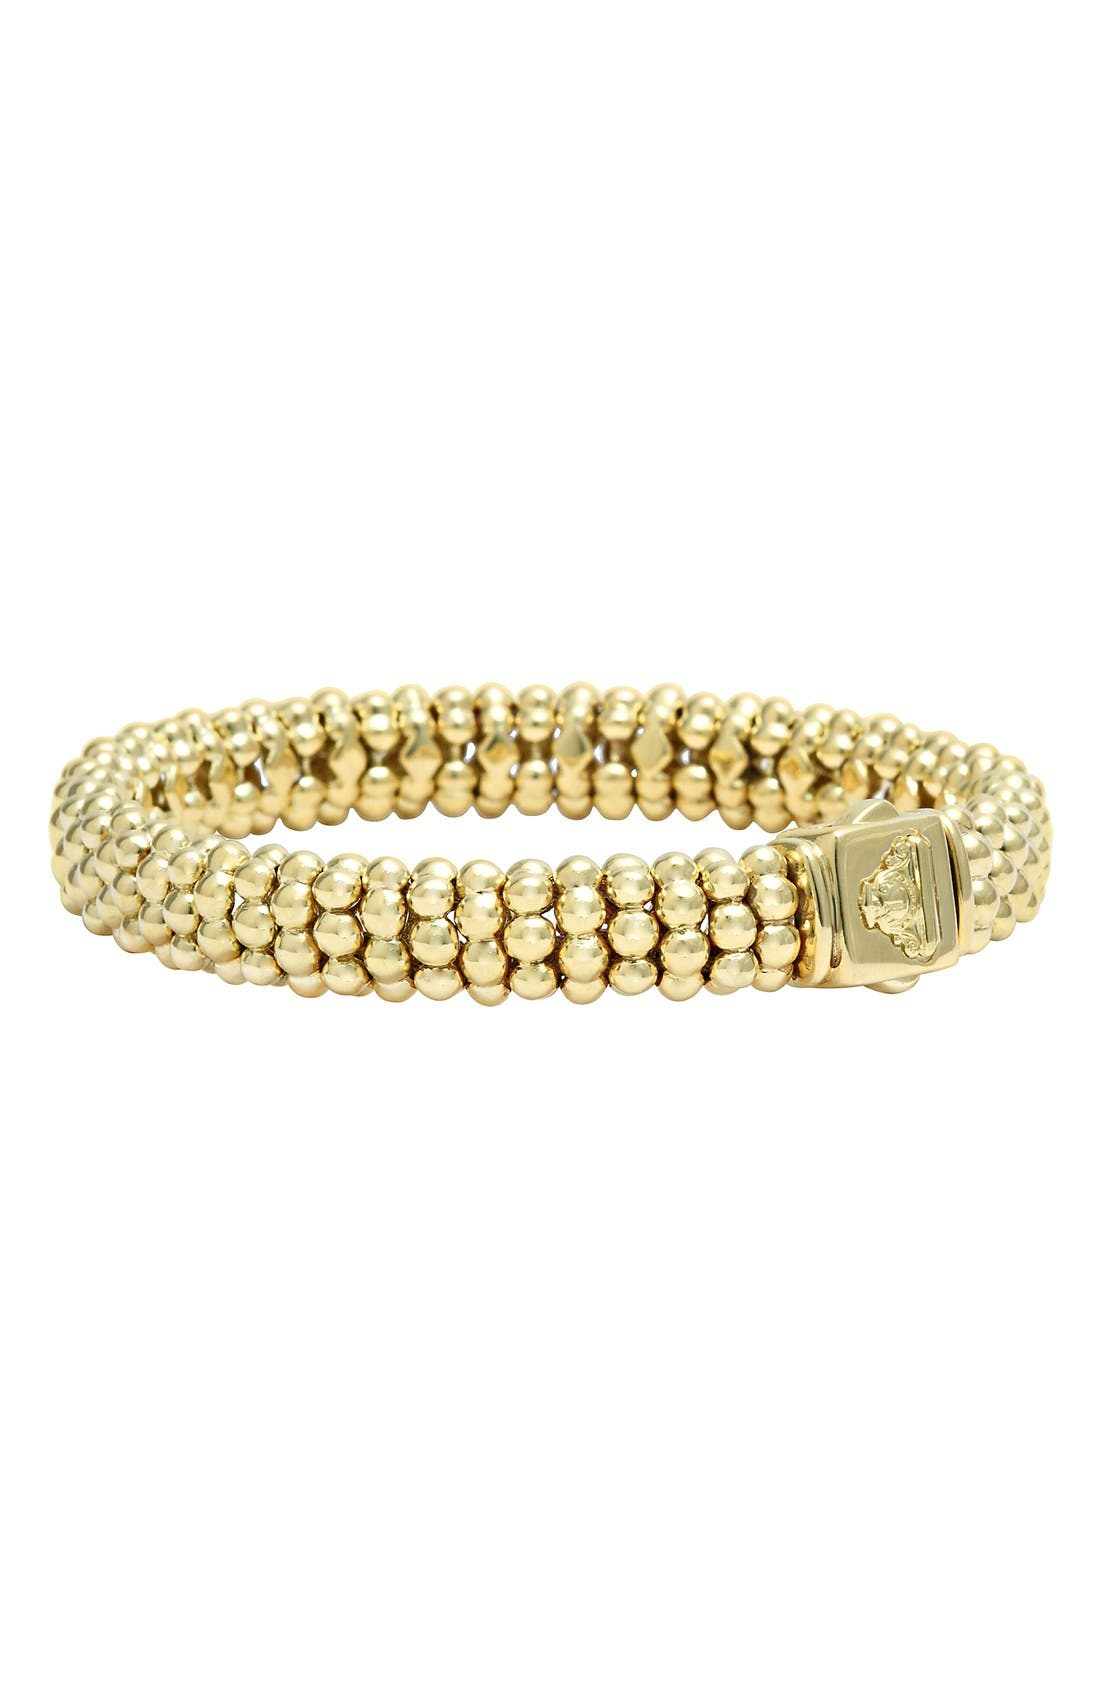 'Caviar Gold' Rope Bracelet,                             Alternate thumbnail 2, color,                             Gold